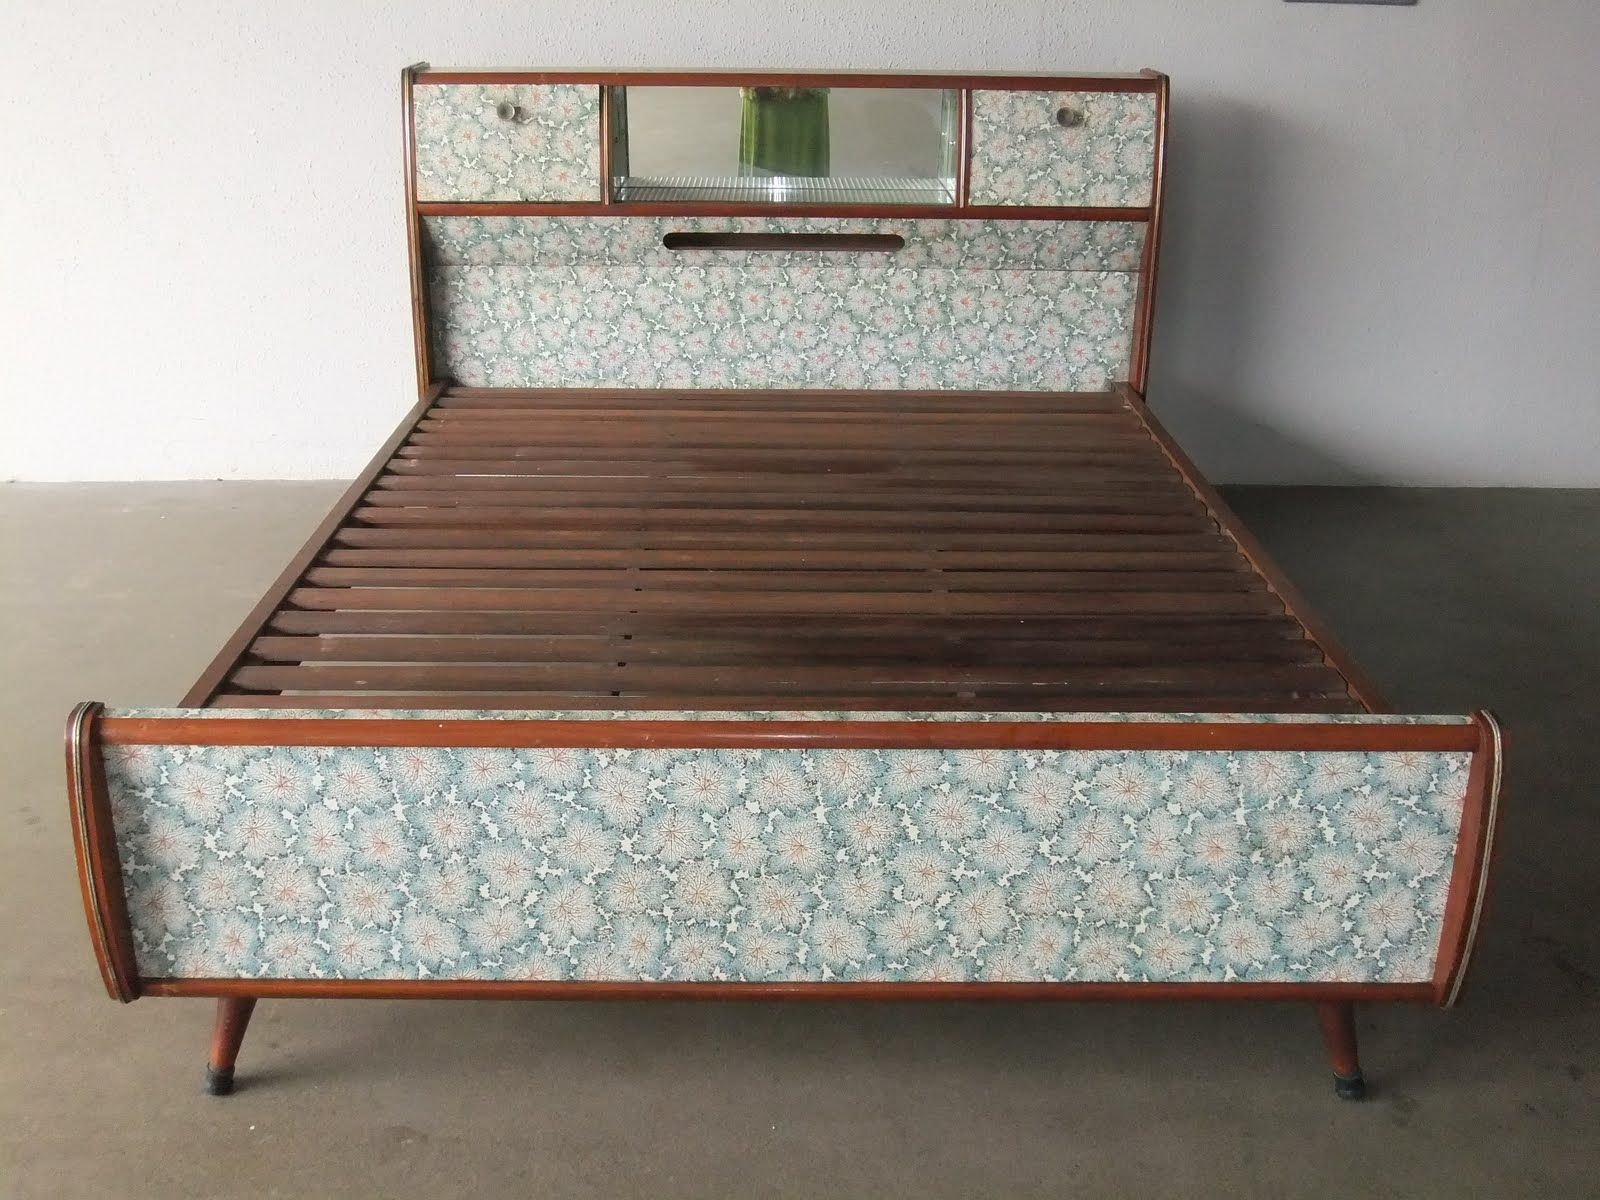 A Rare Formica Bed With Useful Compartments On The Headboard